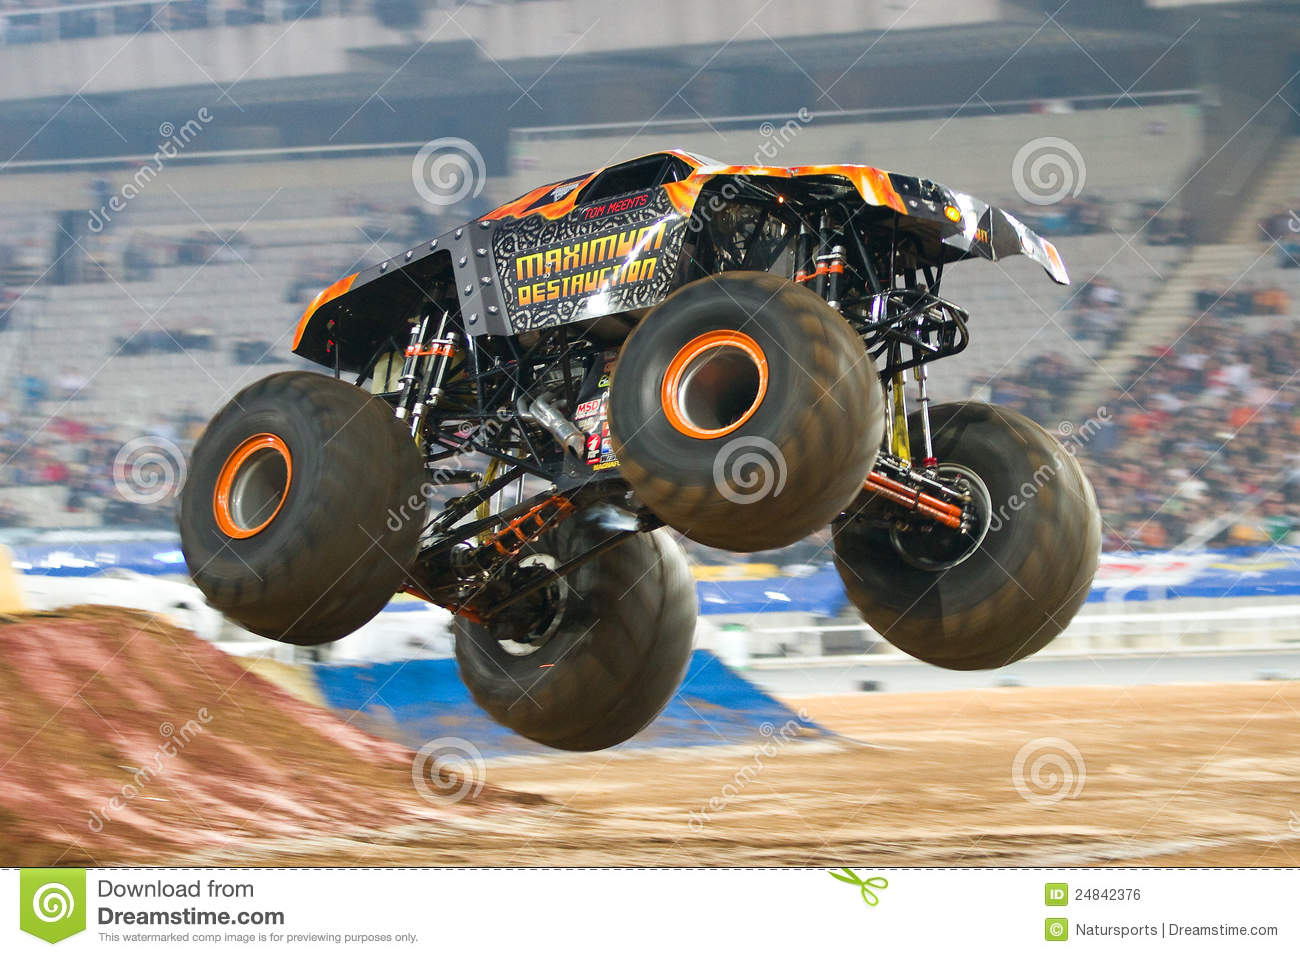 maximum destruction monster truck editorial photo image 24842376. Black Bedroom Furniture Sets. Home Design Ideas